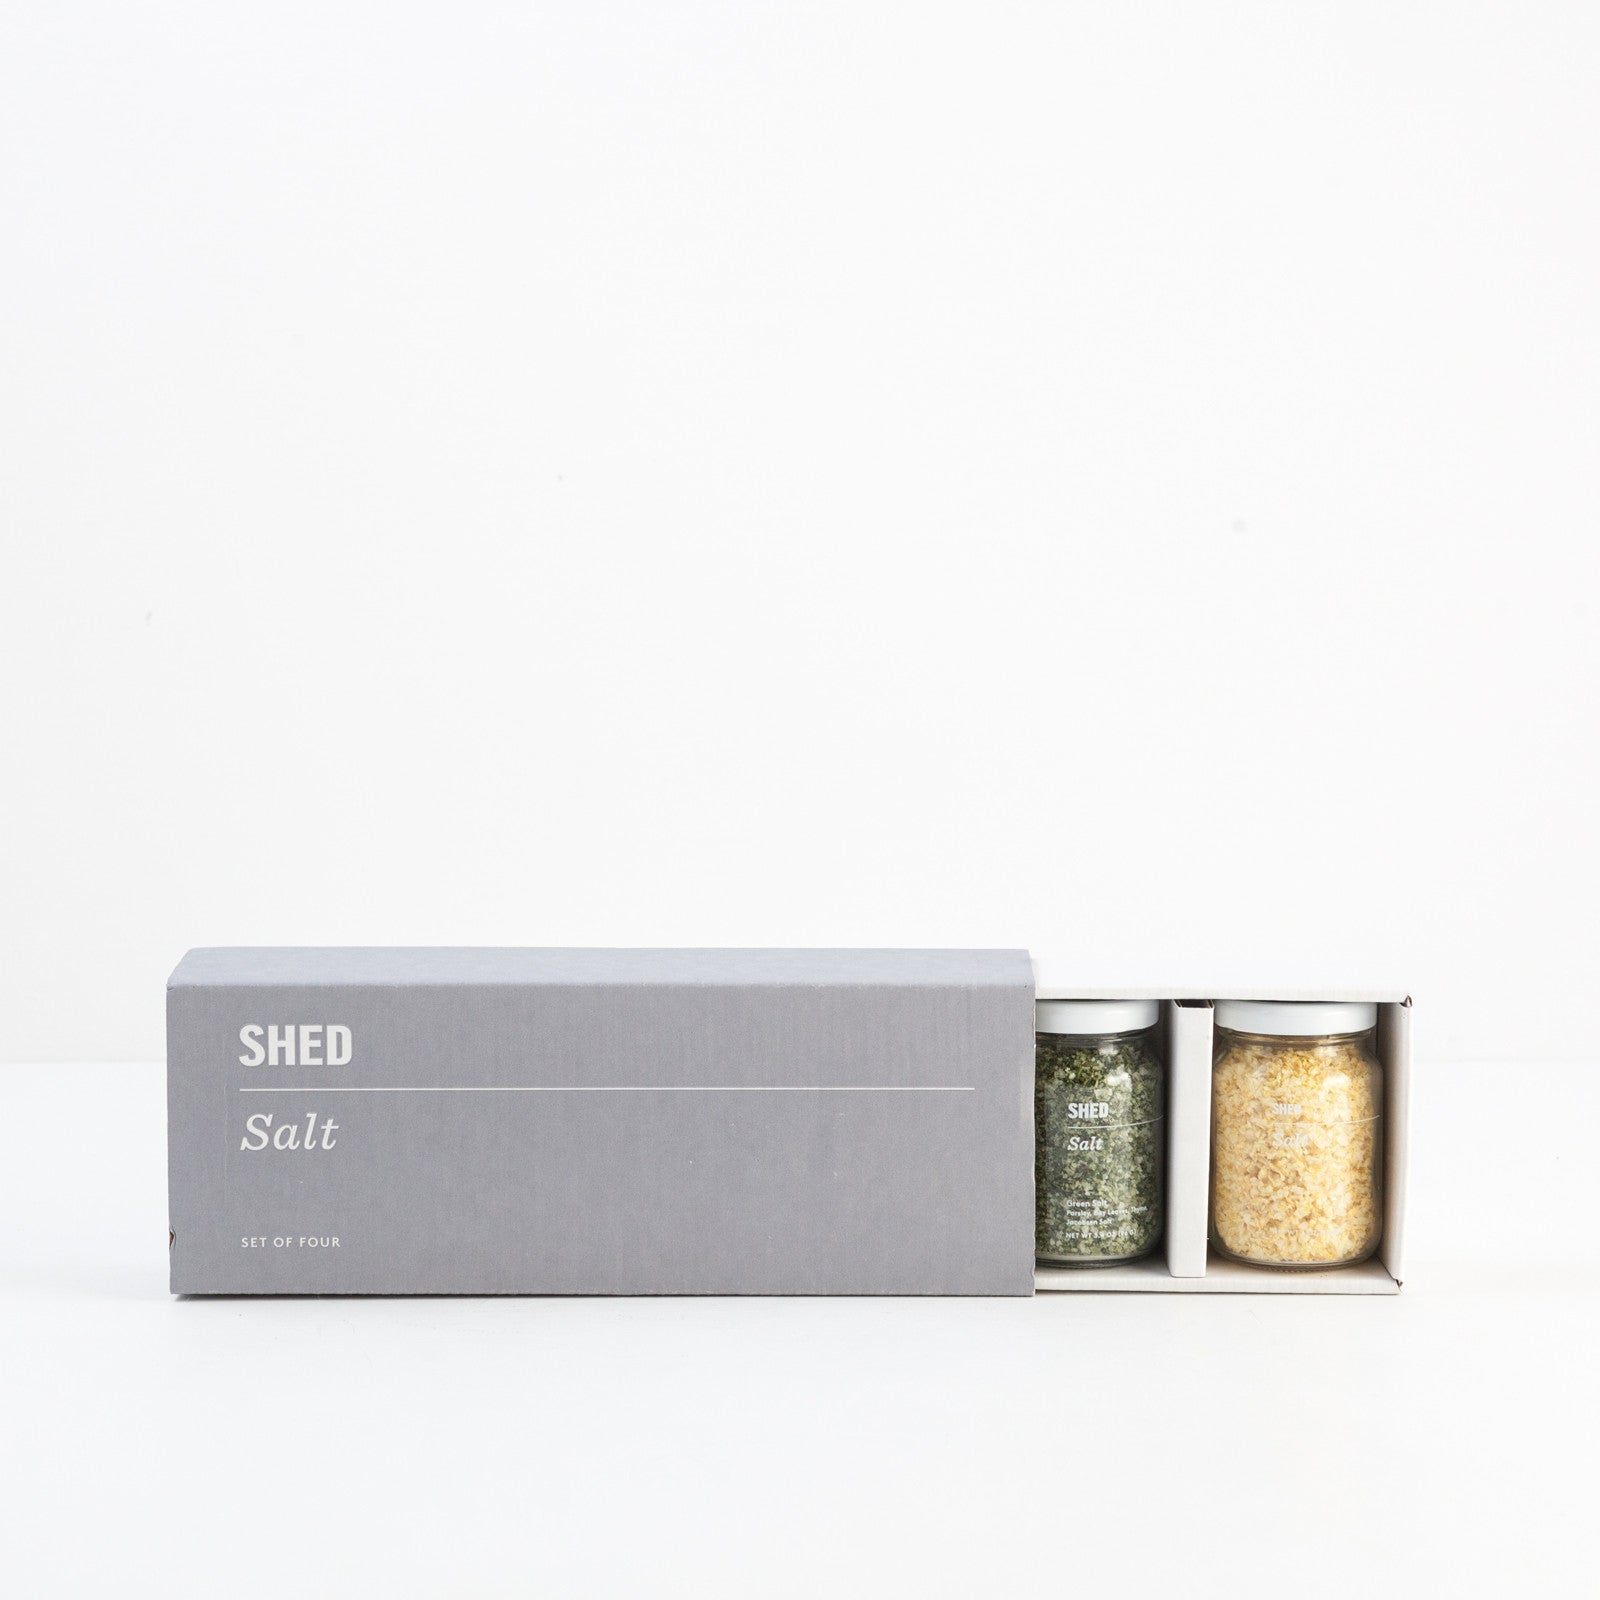 SHED Salt Blends